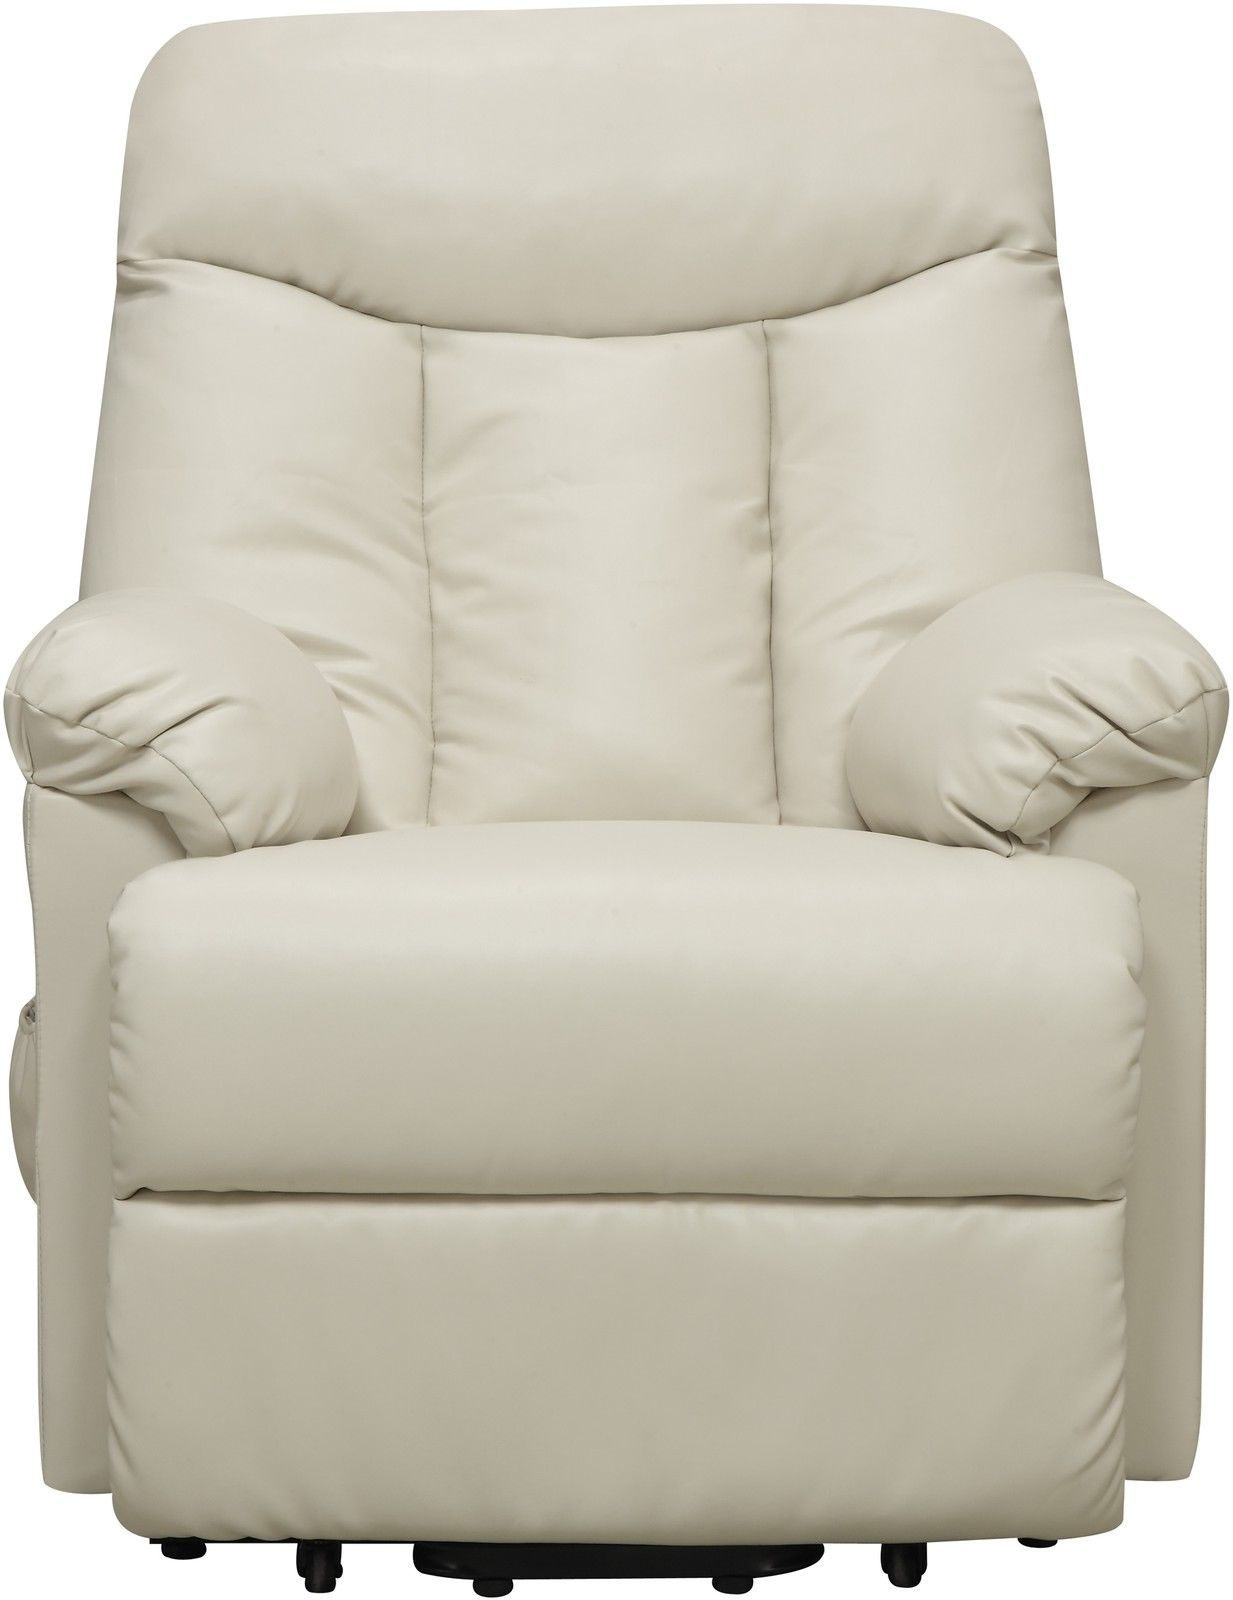 Electric Lift Chair Recliner Cream Leather Power Motion ...